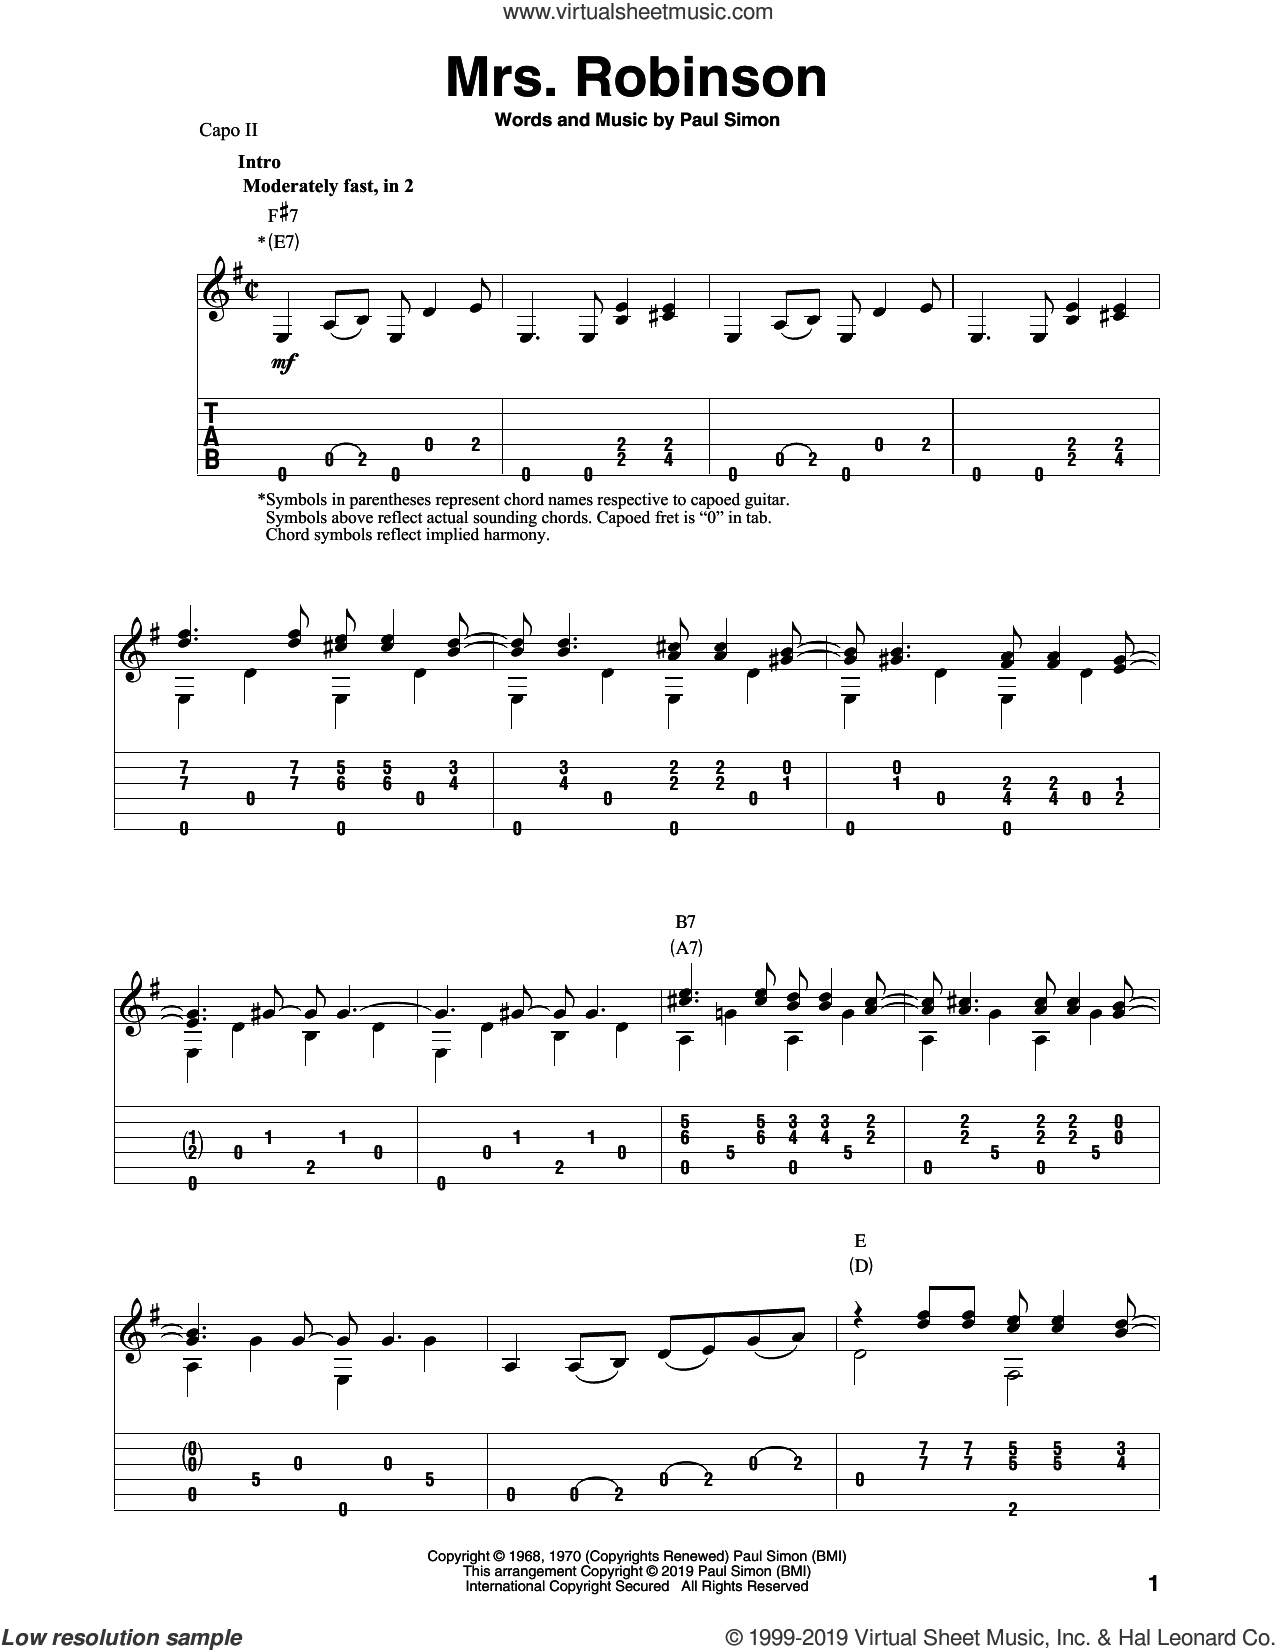 Mrs. Robinson (arr. Bill LaFleur) sheet music for guitar solo by Simon & Garfunkel, Bill LaFleur and Paul Simon, intermediate skill level